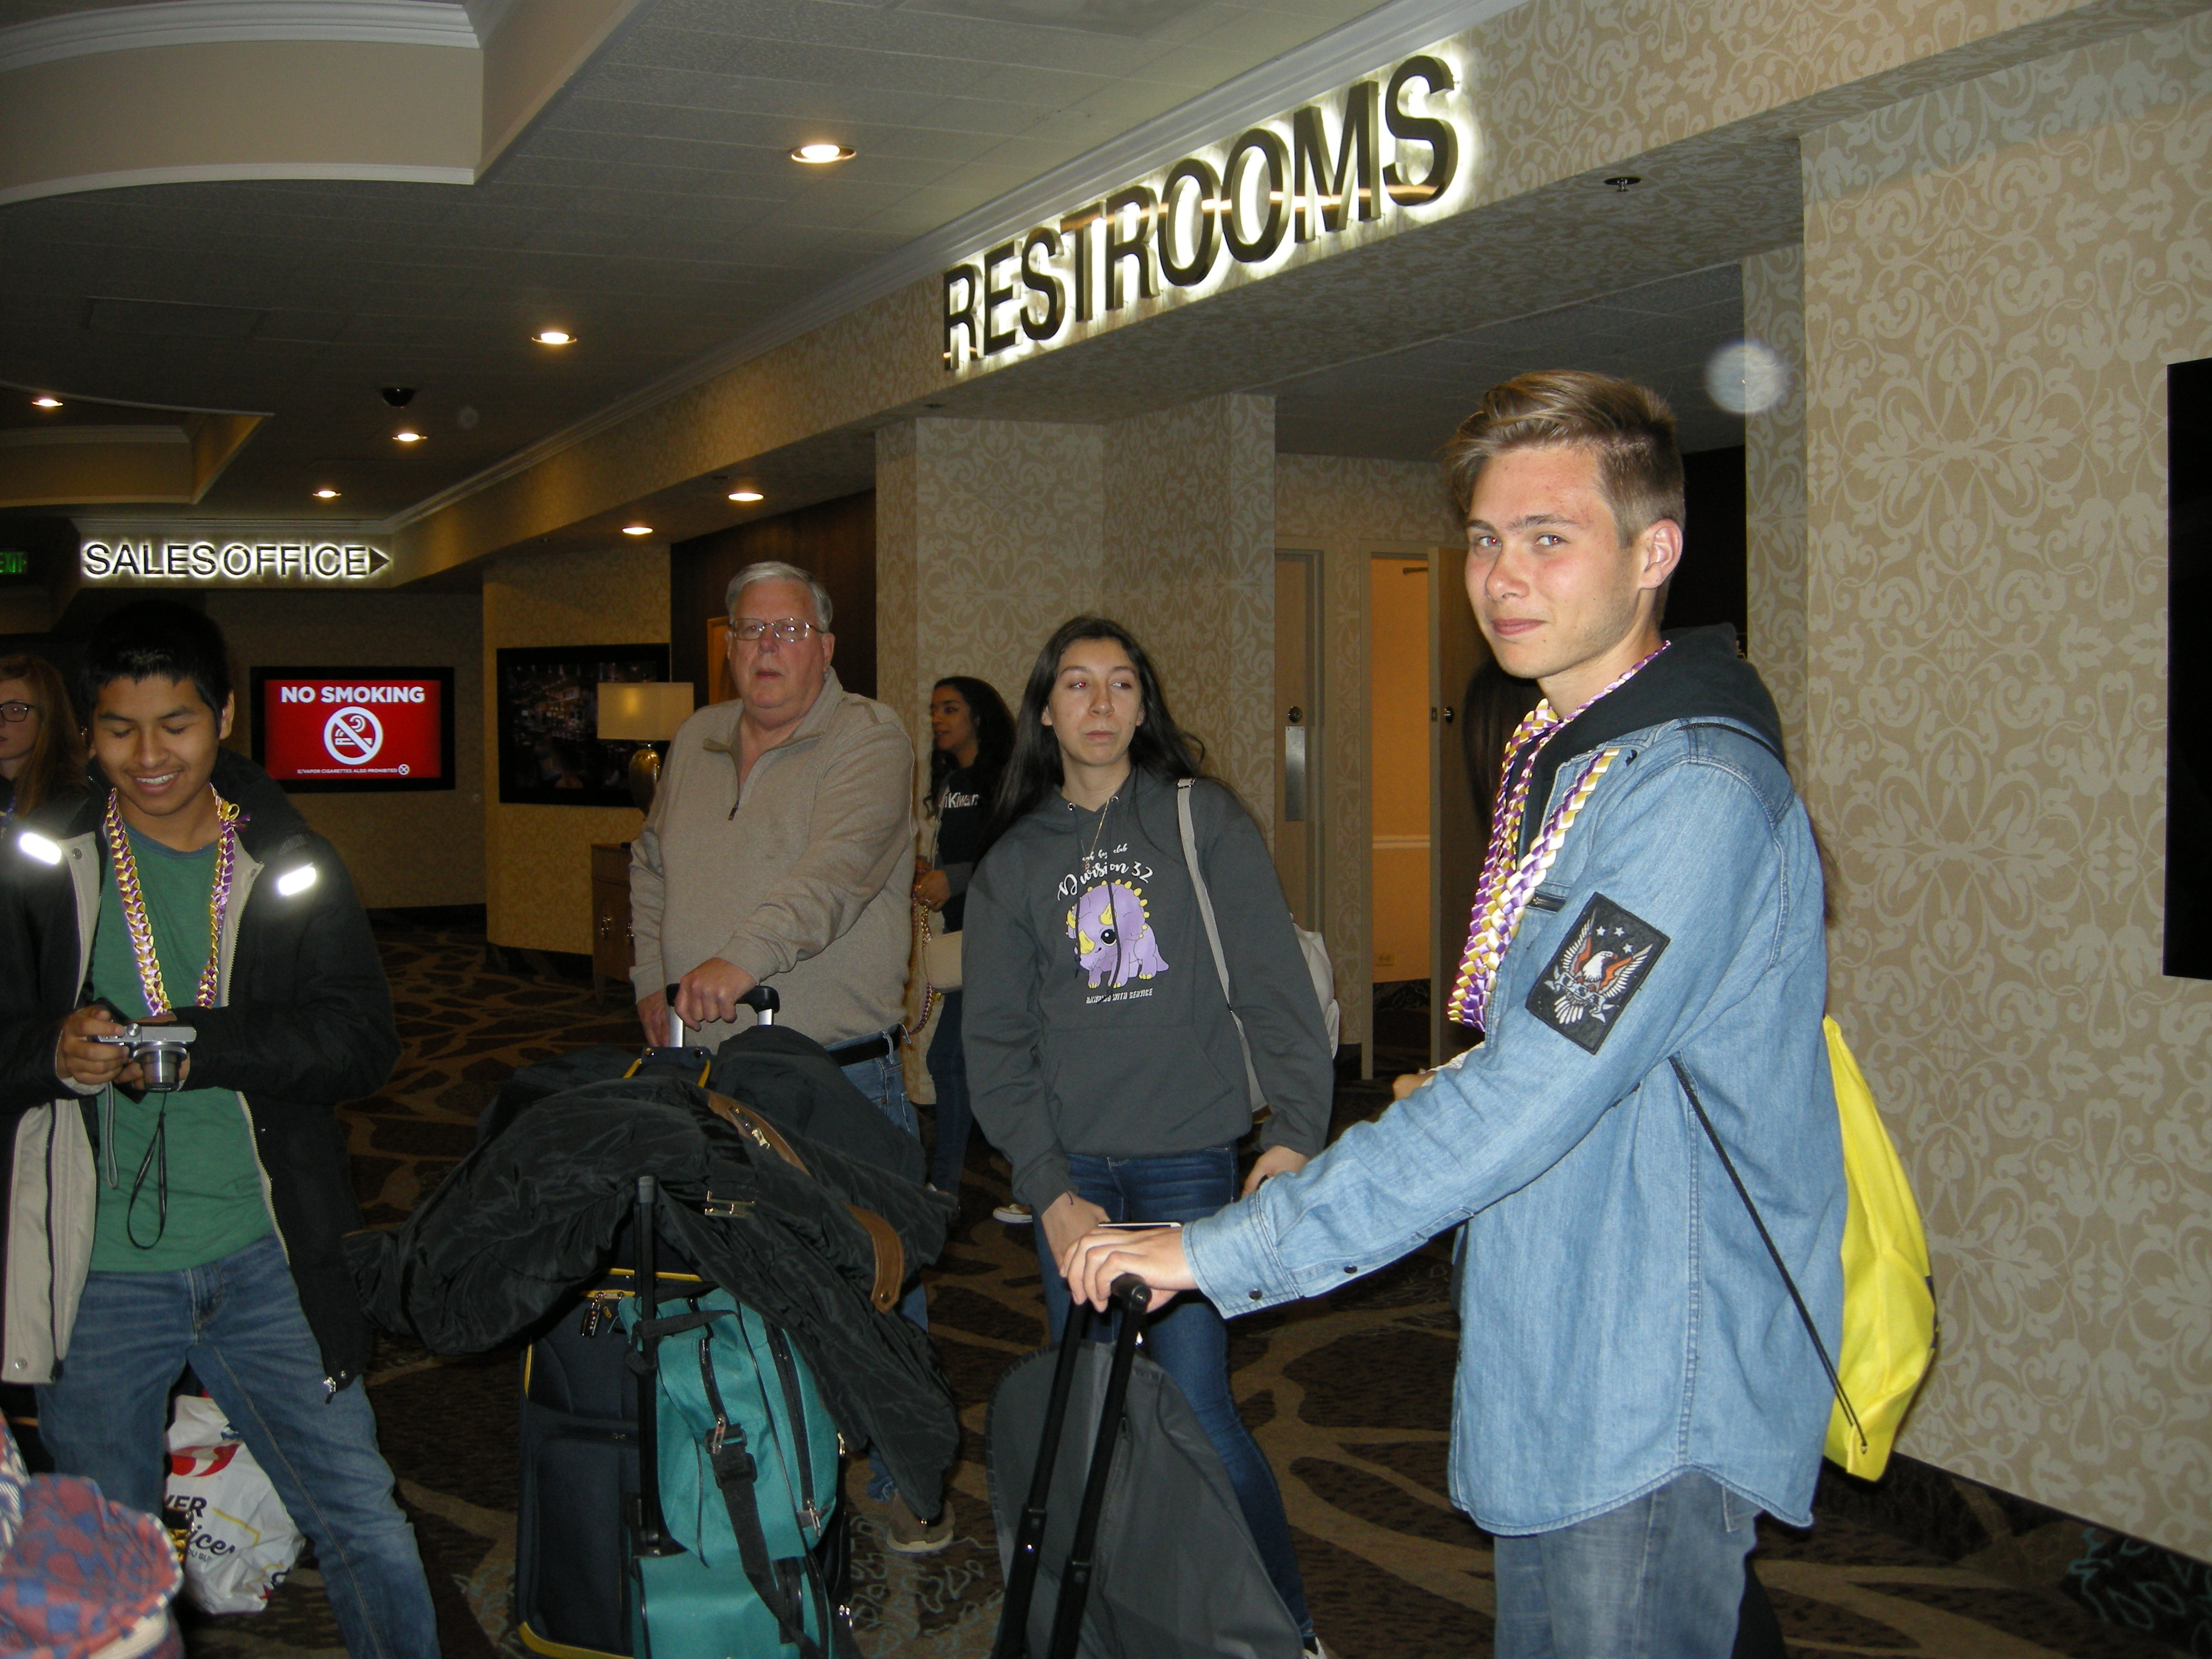 Arriving at hotel